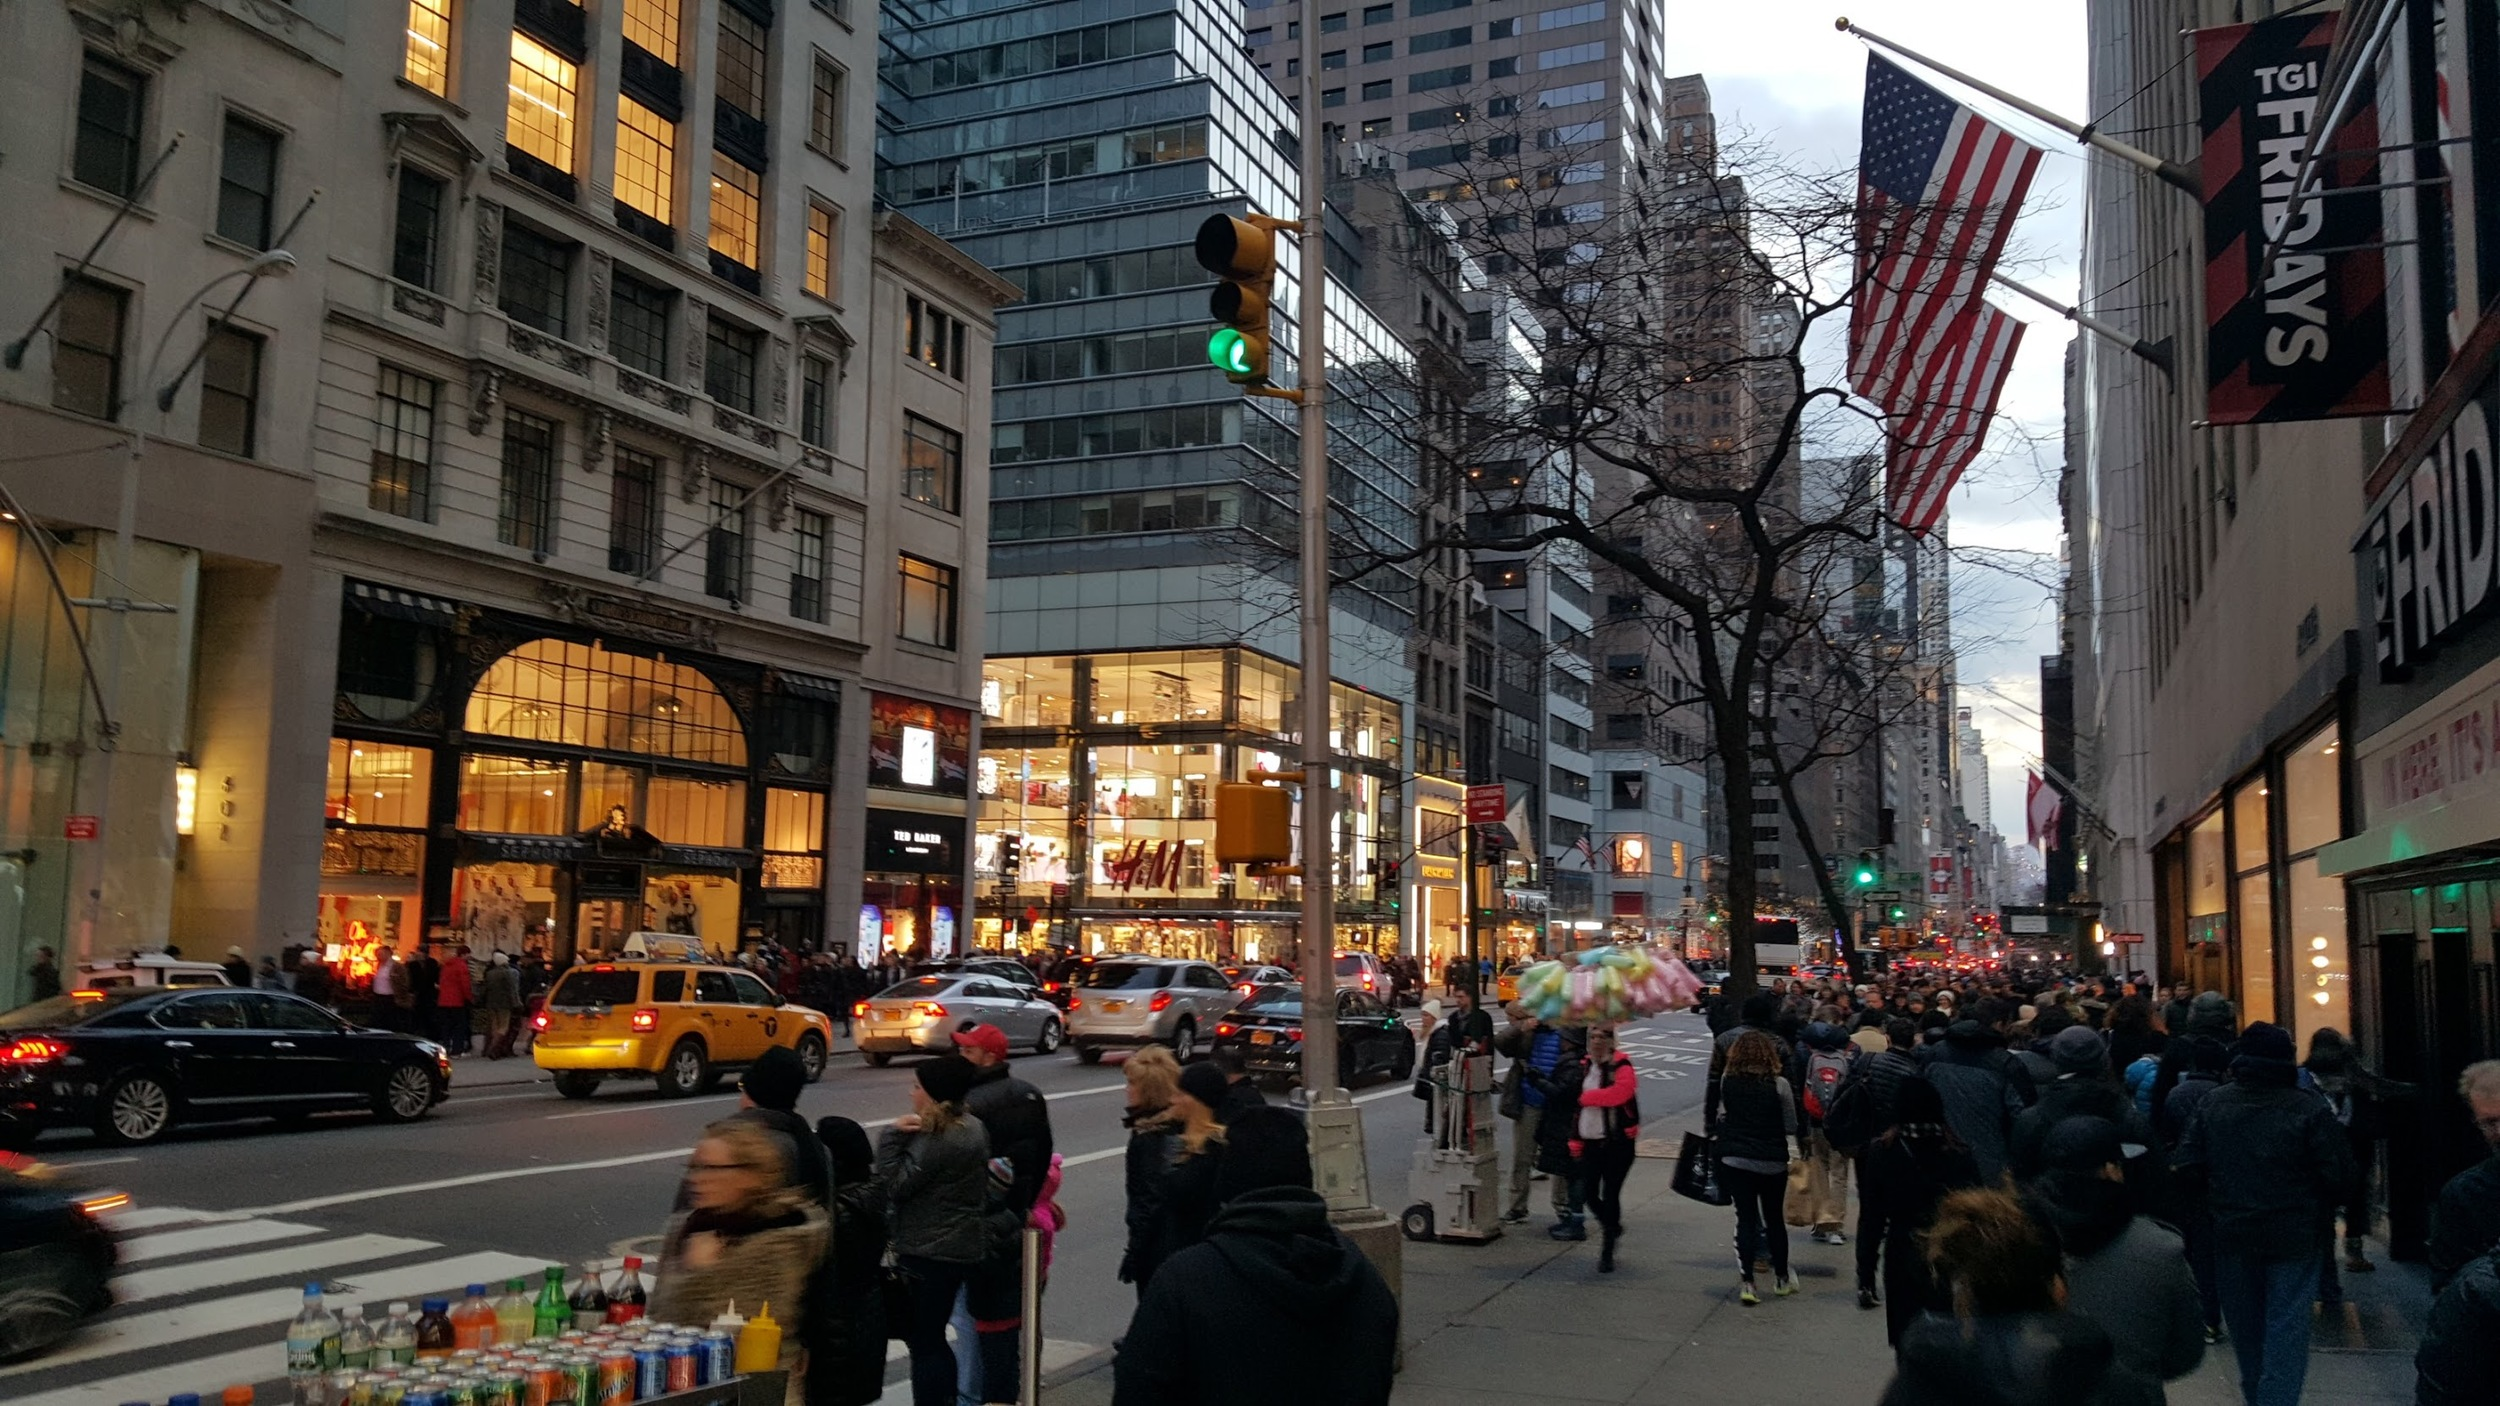 A busy multi-lane avenue in Manhattan that I would not dare to jaywalk.